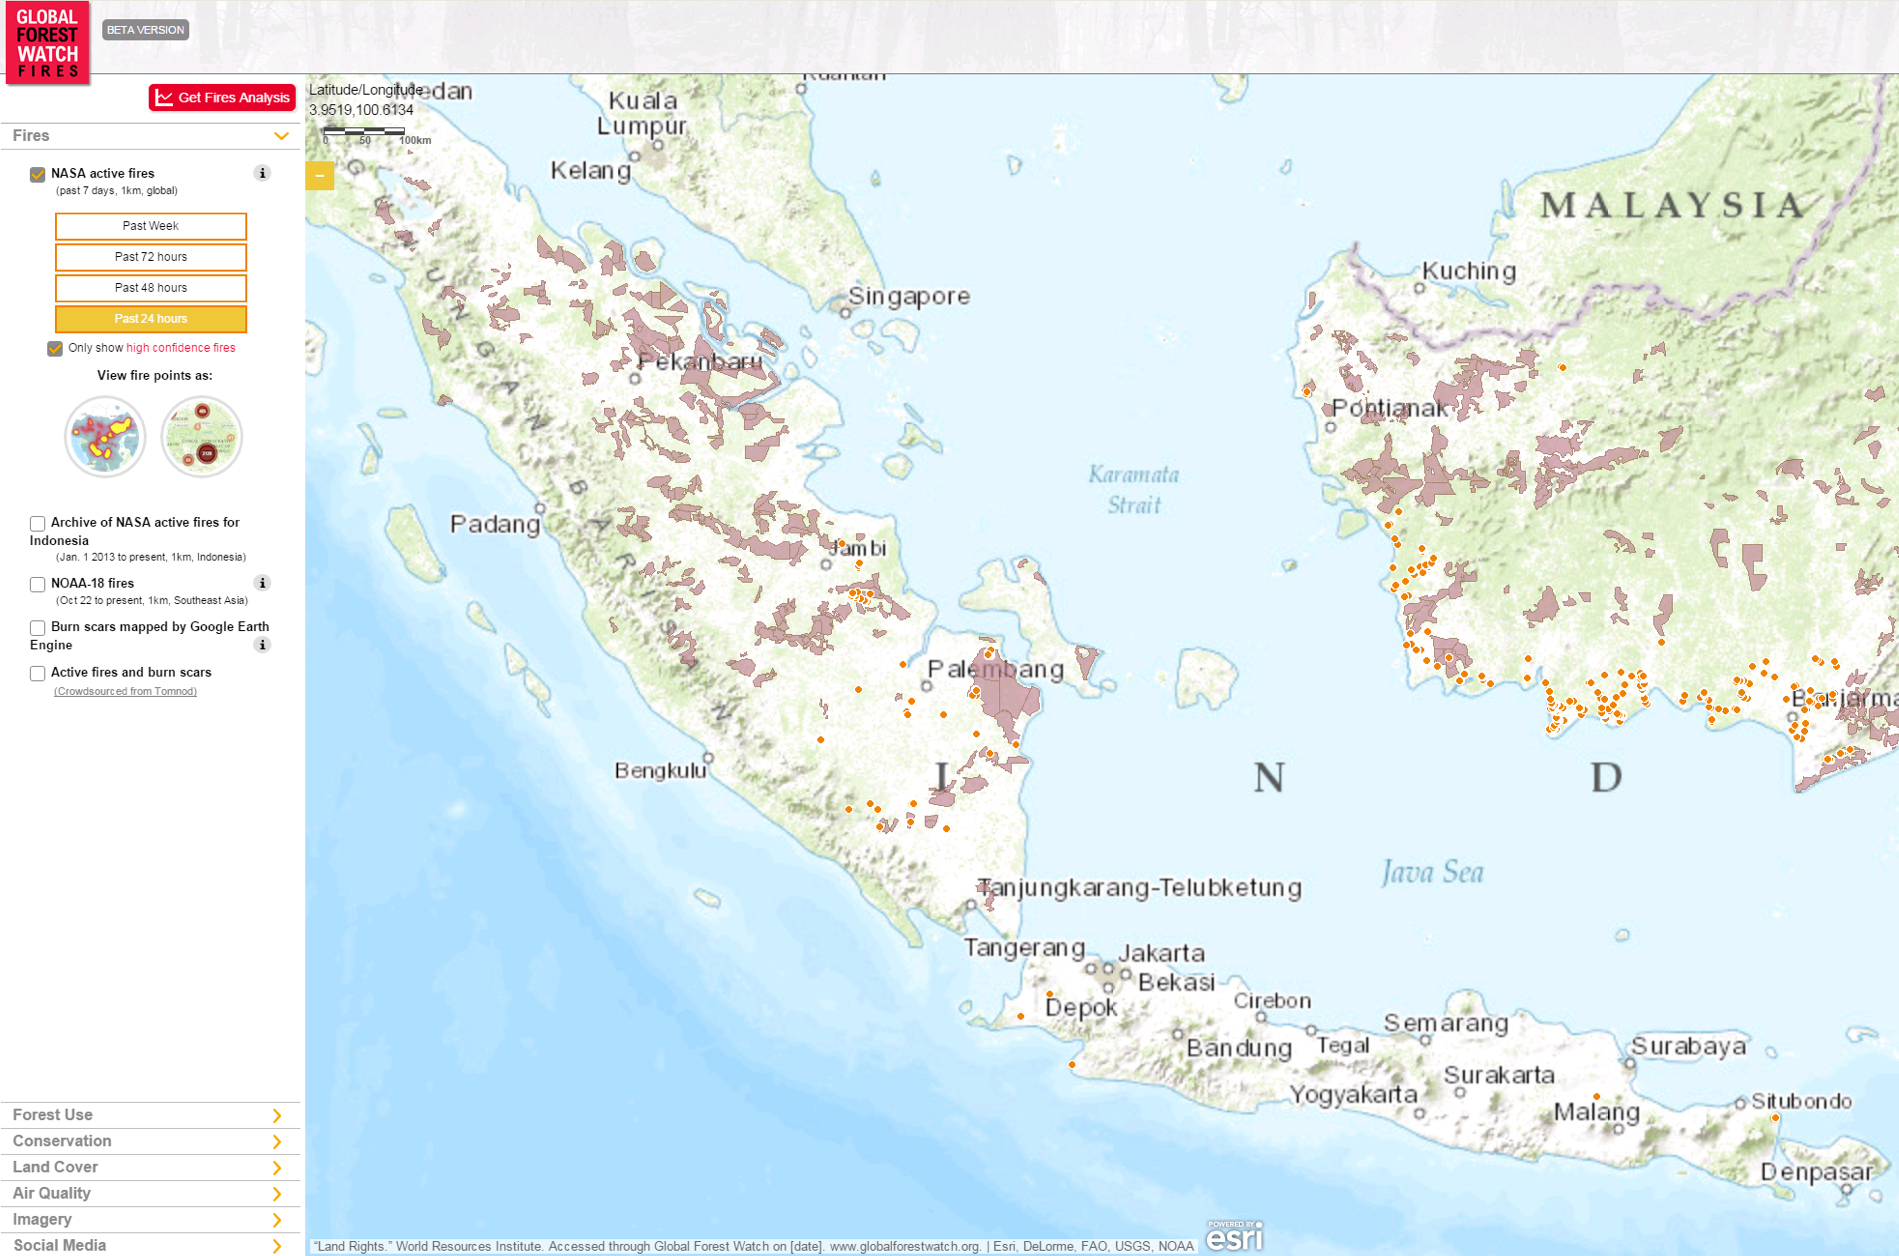 WRI-16 September 2015 - Hotspots are mainly located in South Sumatra and Kalimantan.